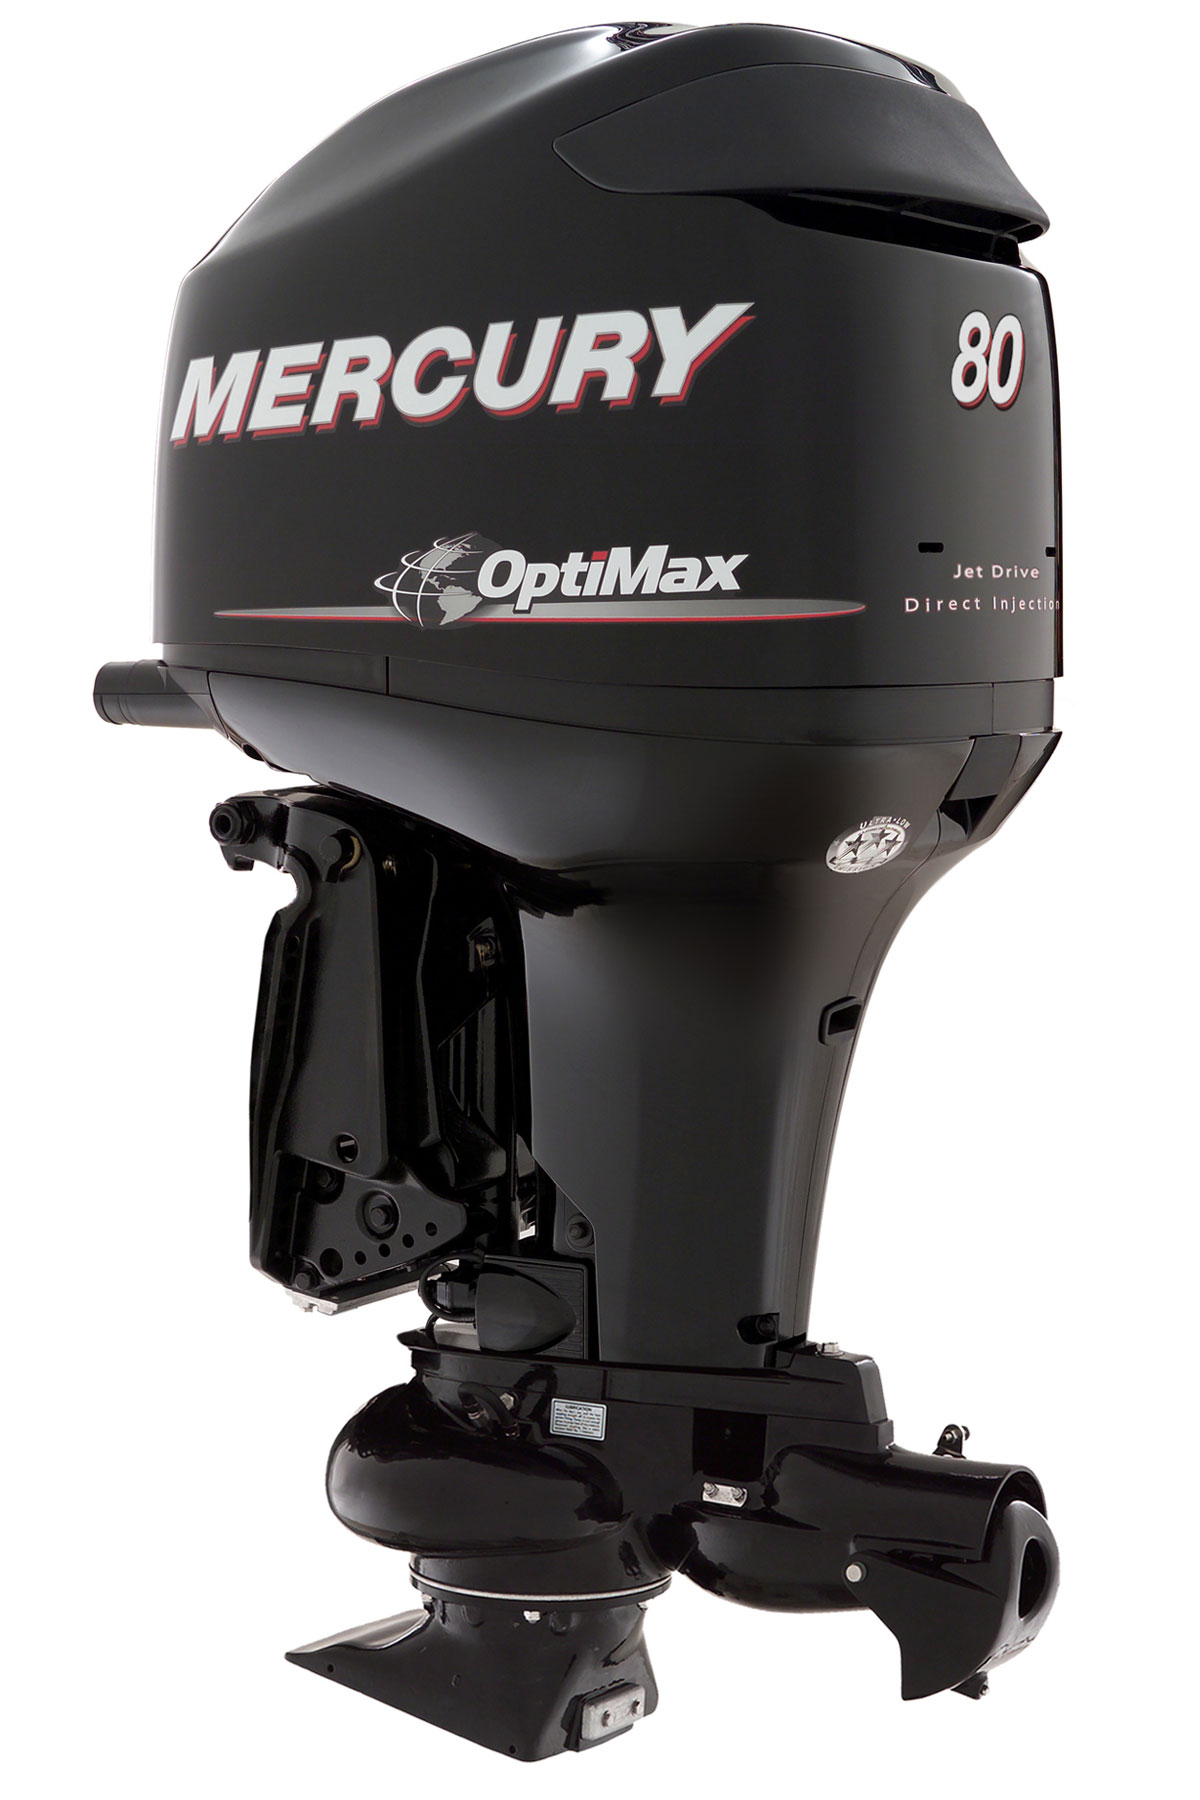 Mercury 90 Optimax Инструкция